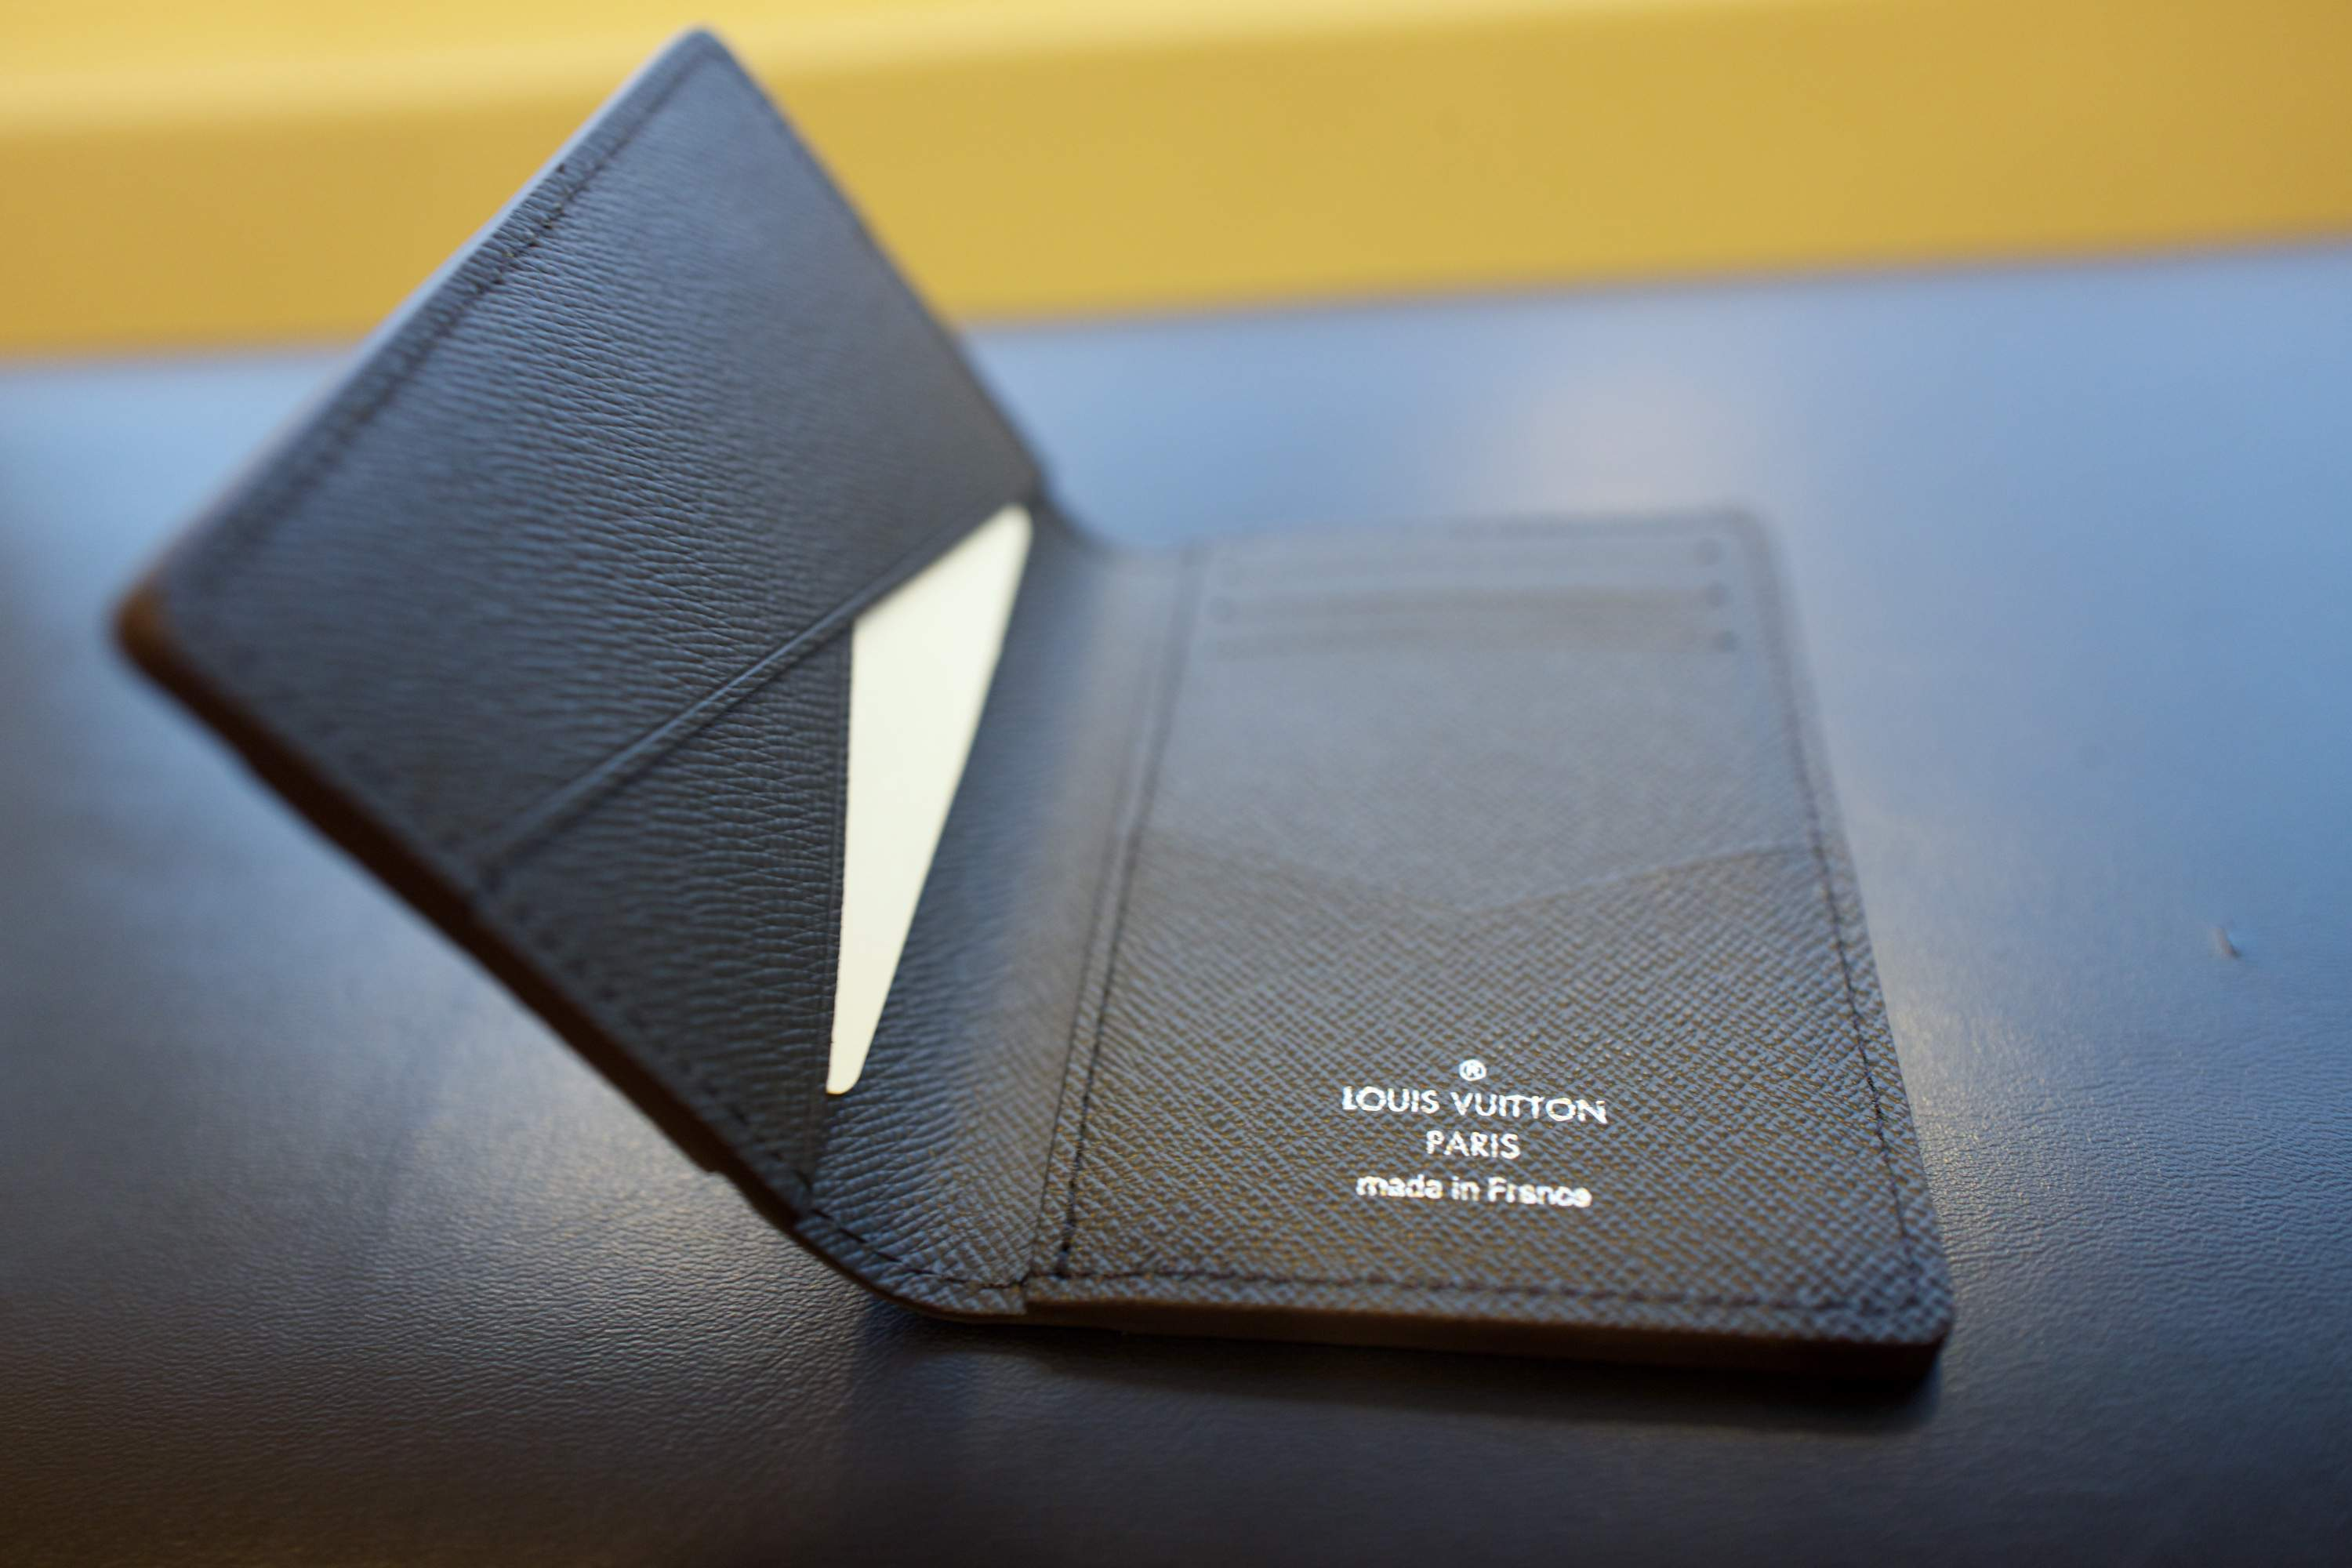 LV card holder5.jpg